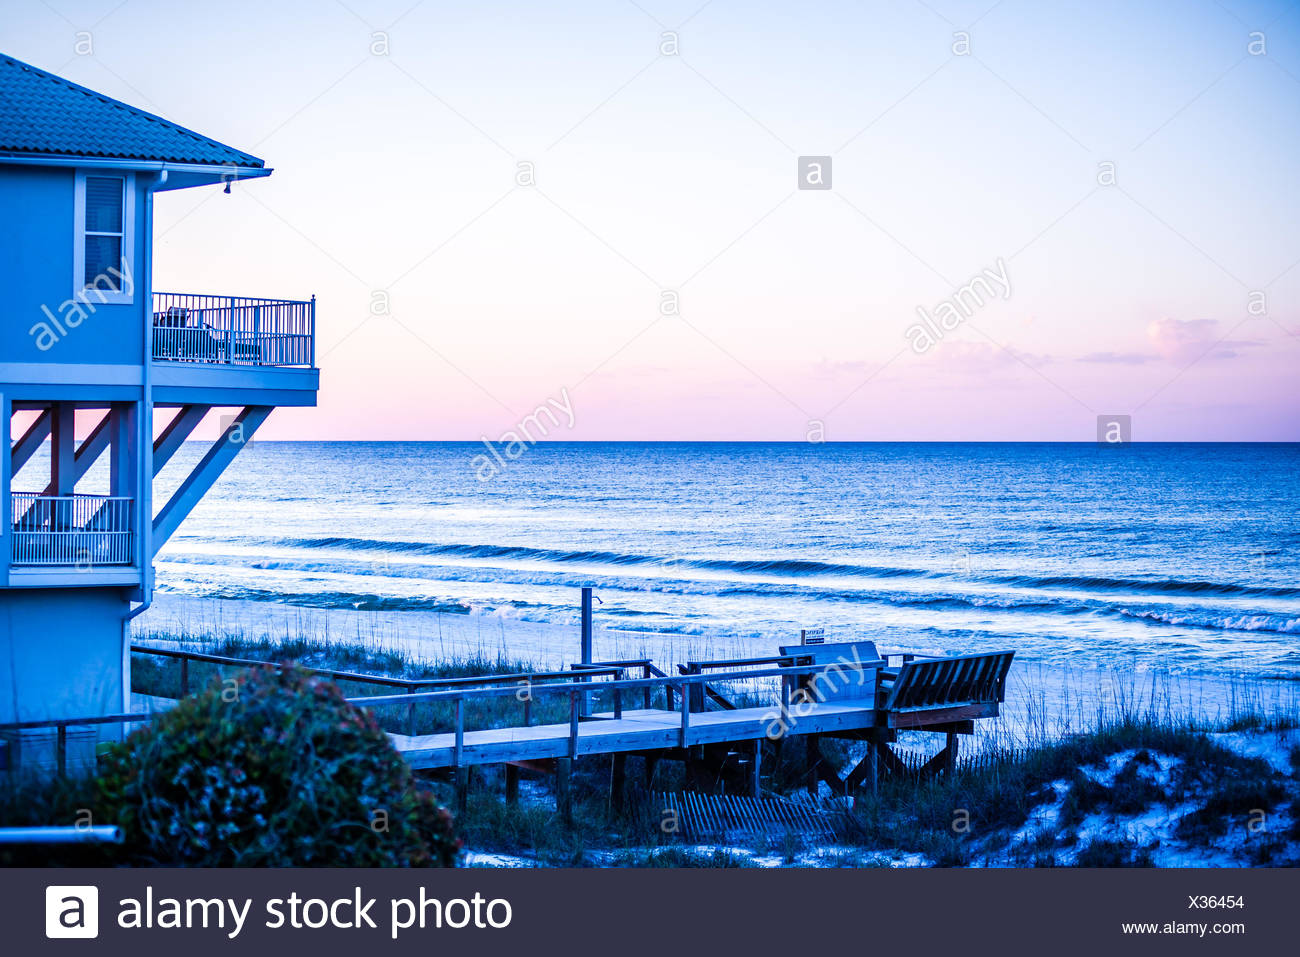 destin florida beach scenes stock photo: 277344848 - alamy